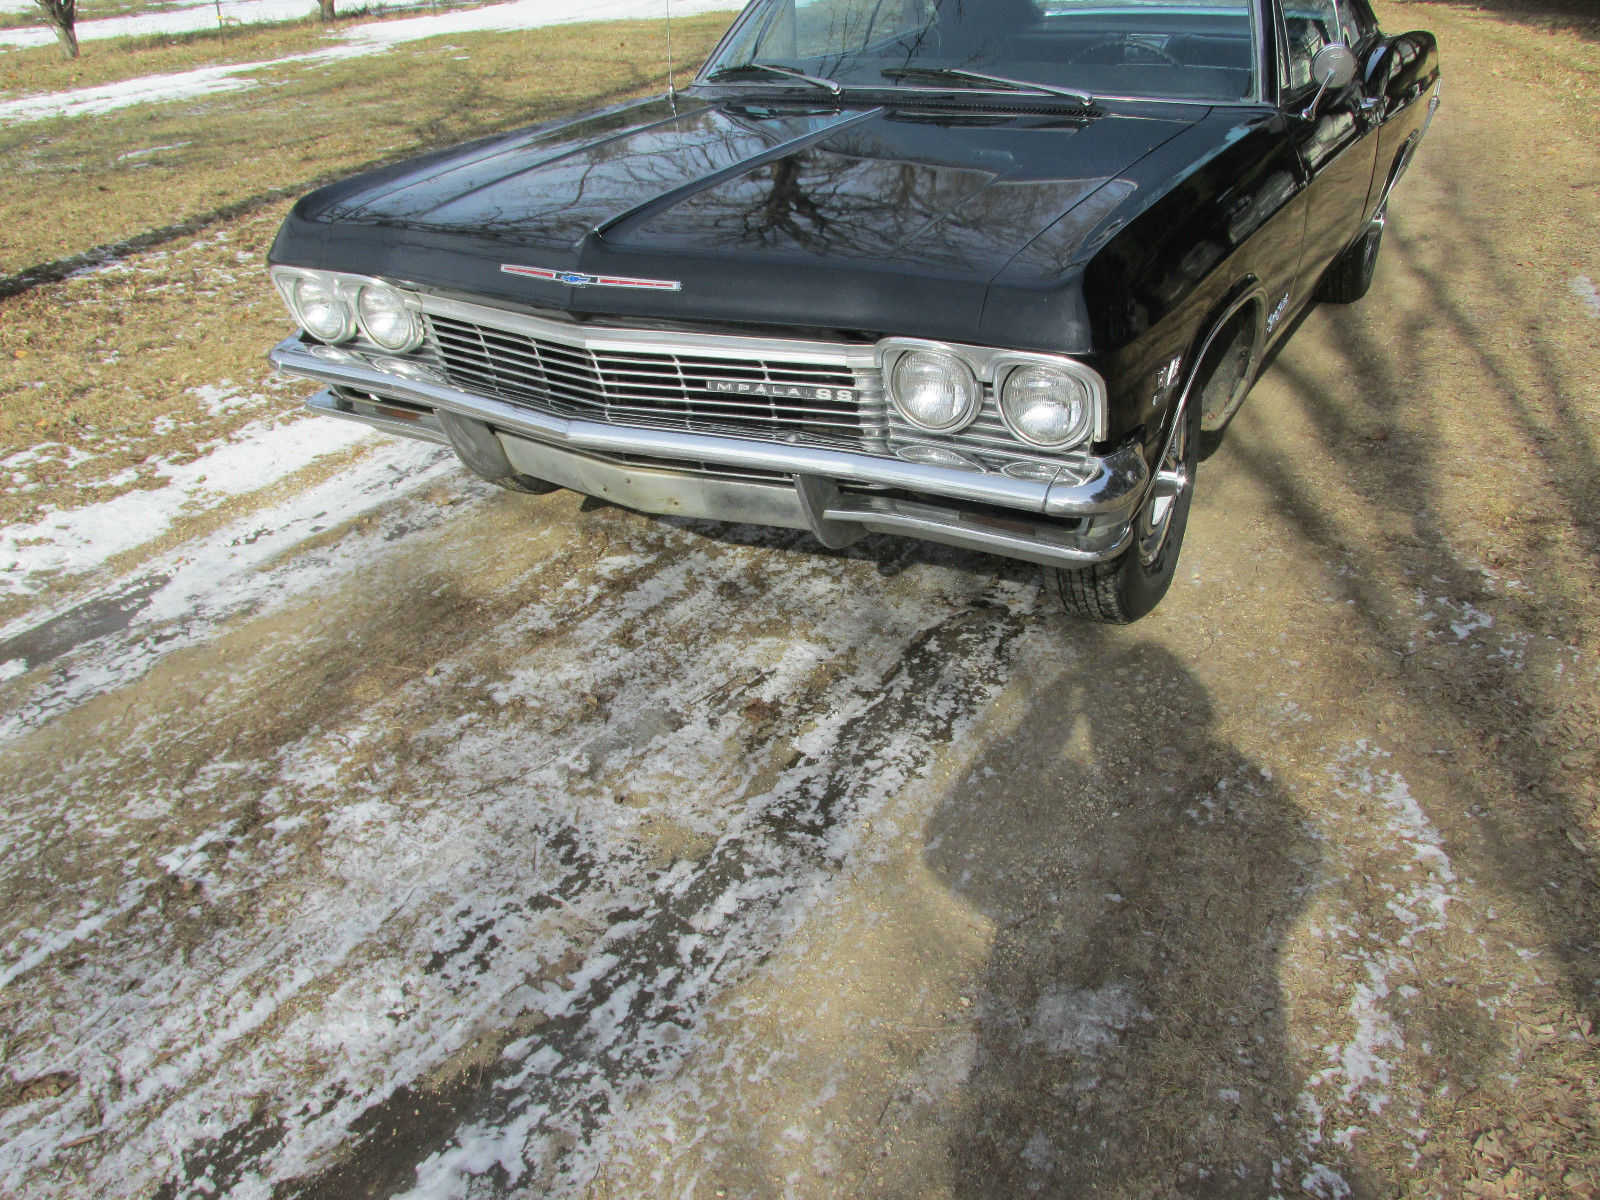 1965 Impala Ss 396 Match Power Steering And Brakes Tilt Wheel Wiring Harness Solid Car 66 67